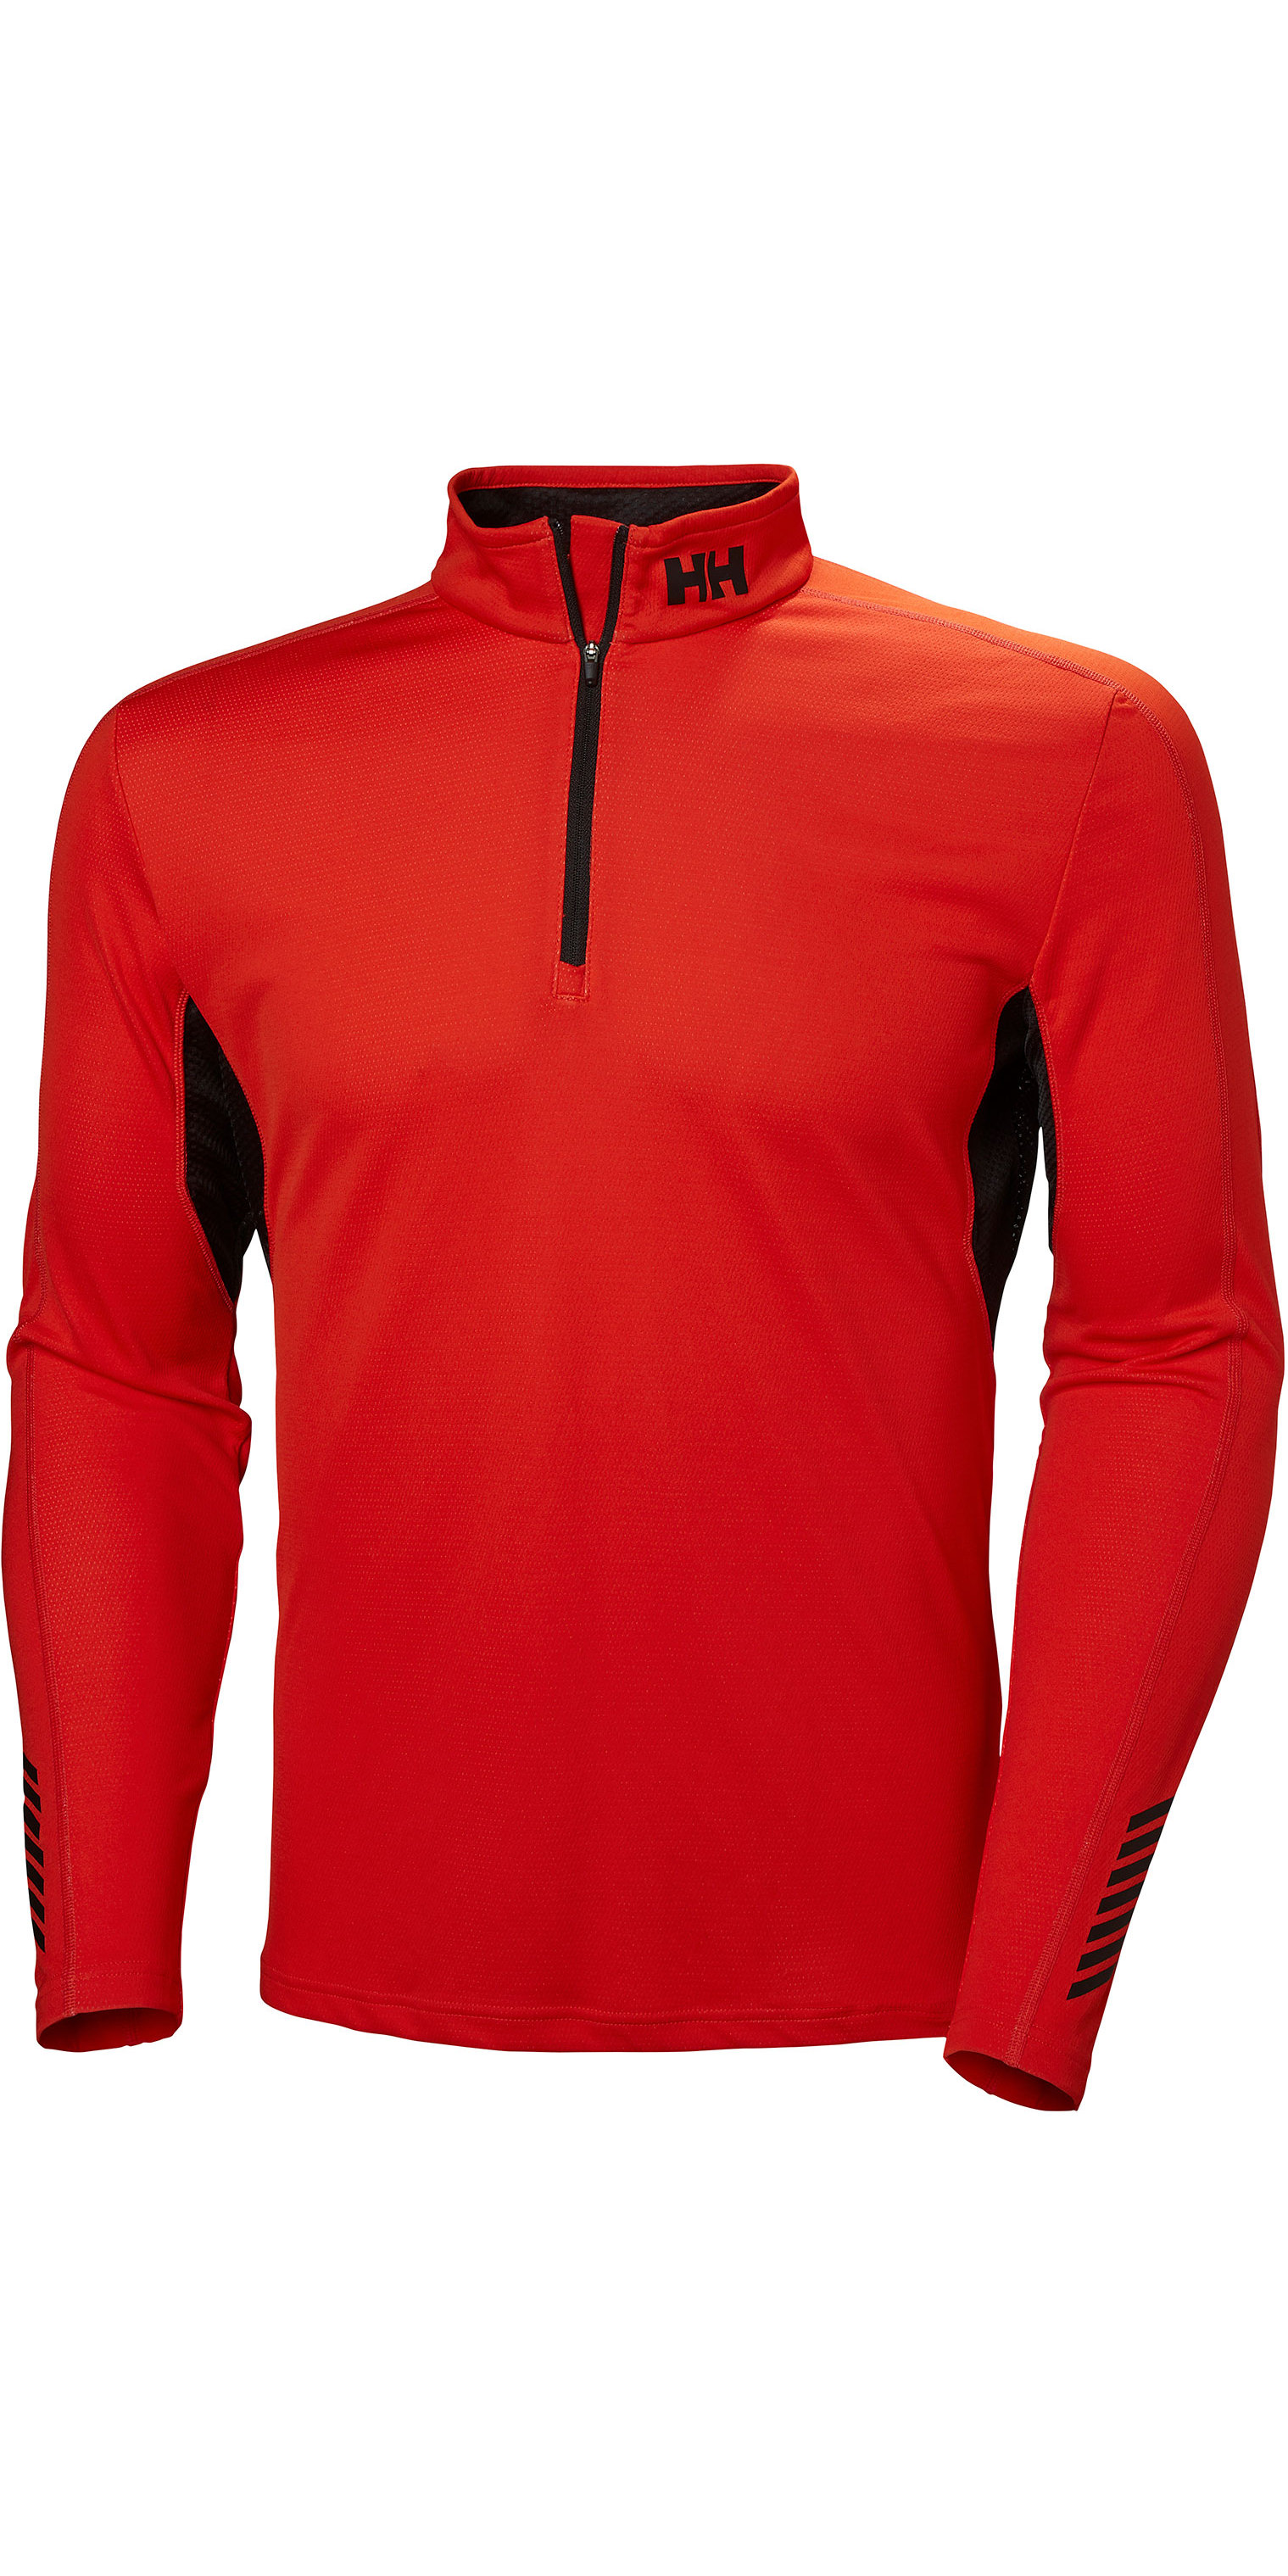 eec807d7af 2019 Helly Hansen Mens Lifa Active Mesh 1 2 Zip Top Cherry Tomato 49318 - Thermal  Base Layer | Wetsuit Outlet